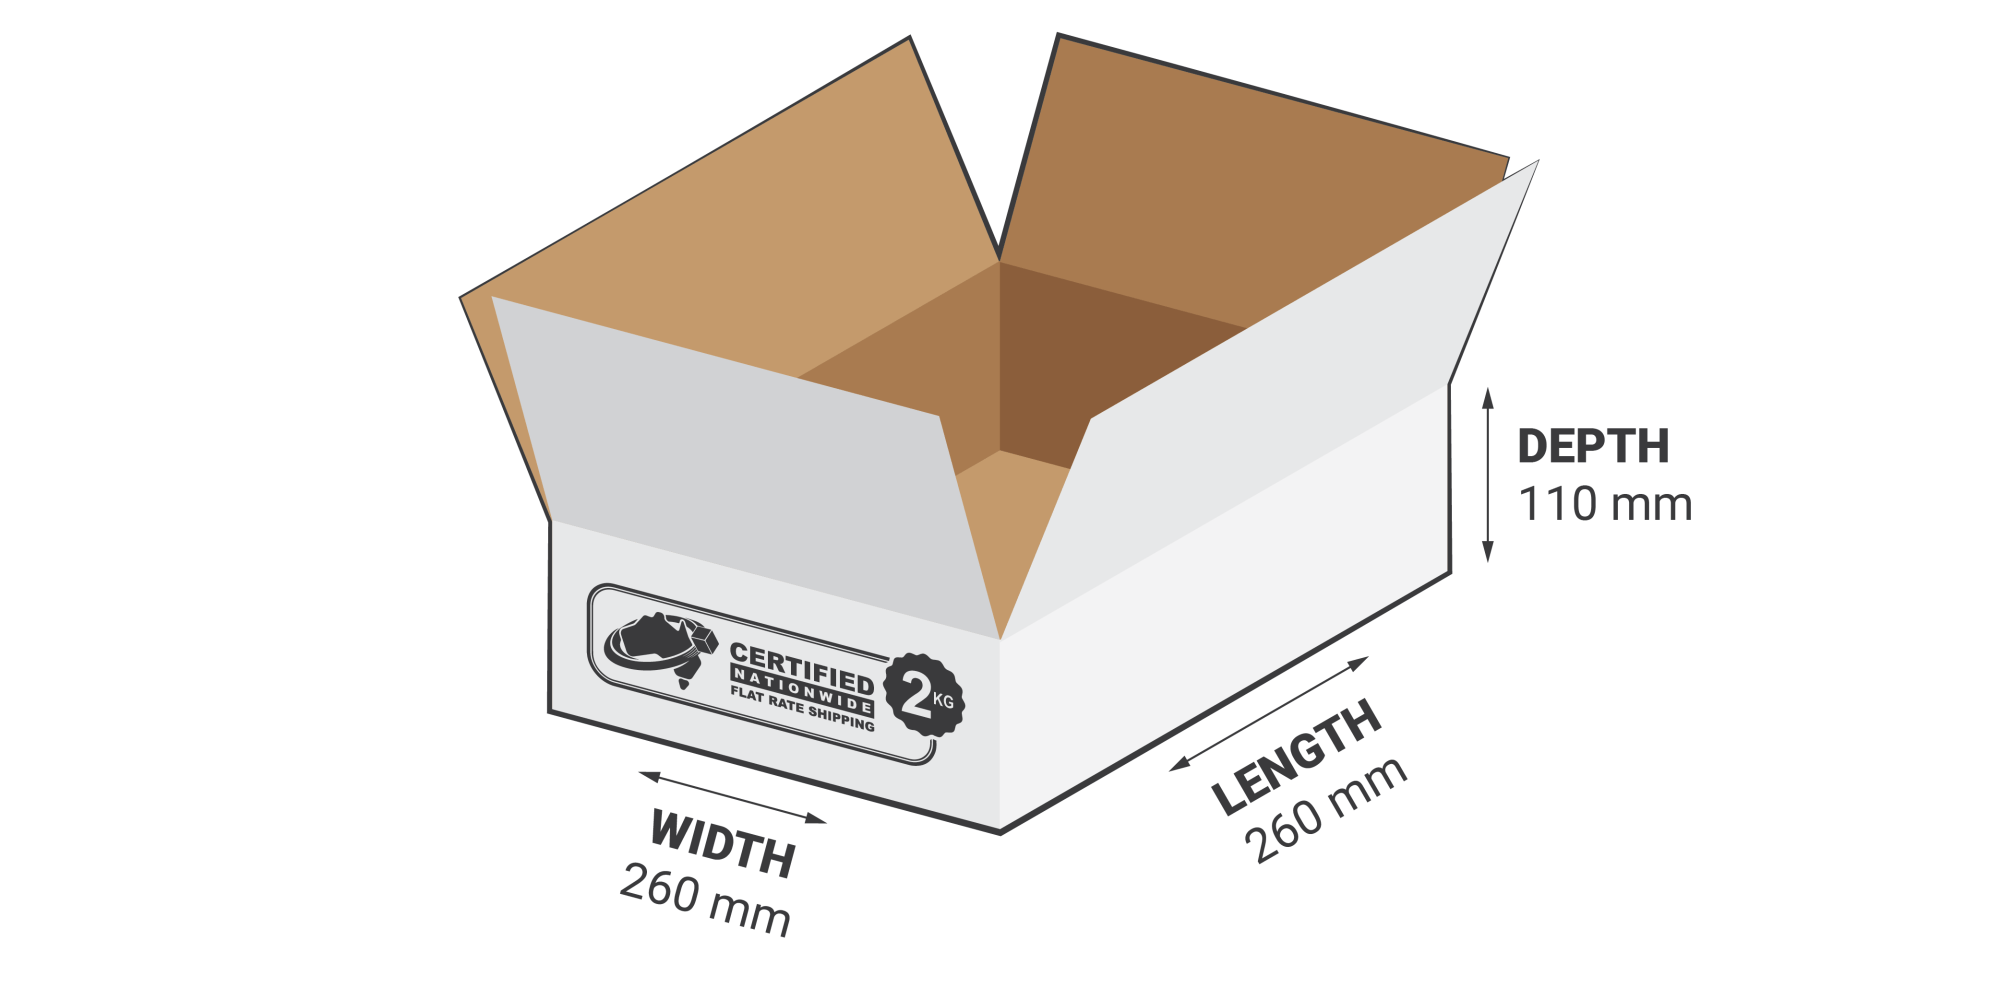 hight resolution of 2kg flat rate boxes 7 44l regular slotted carton